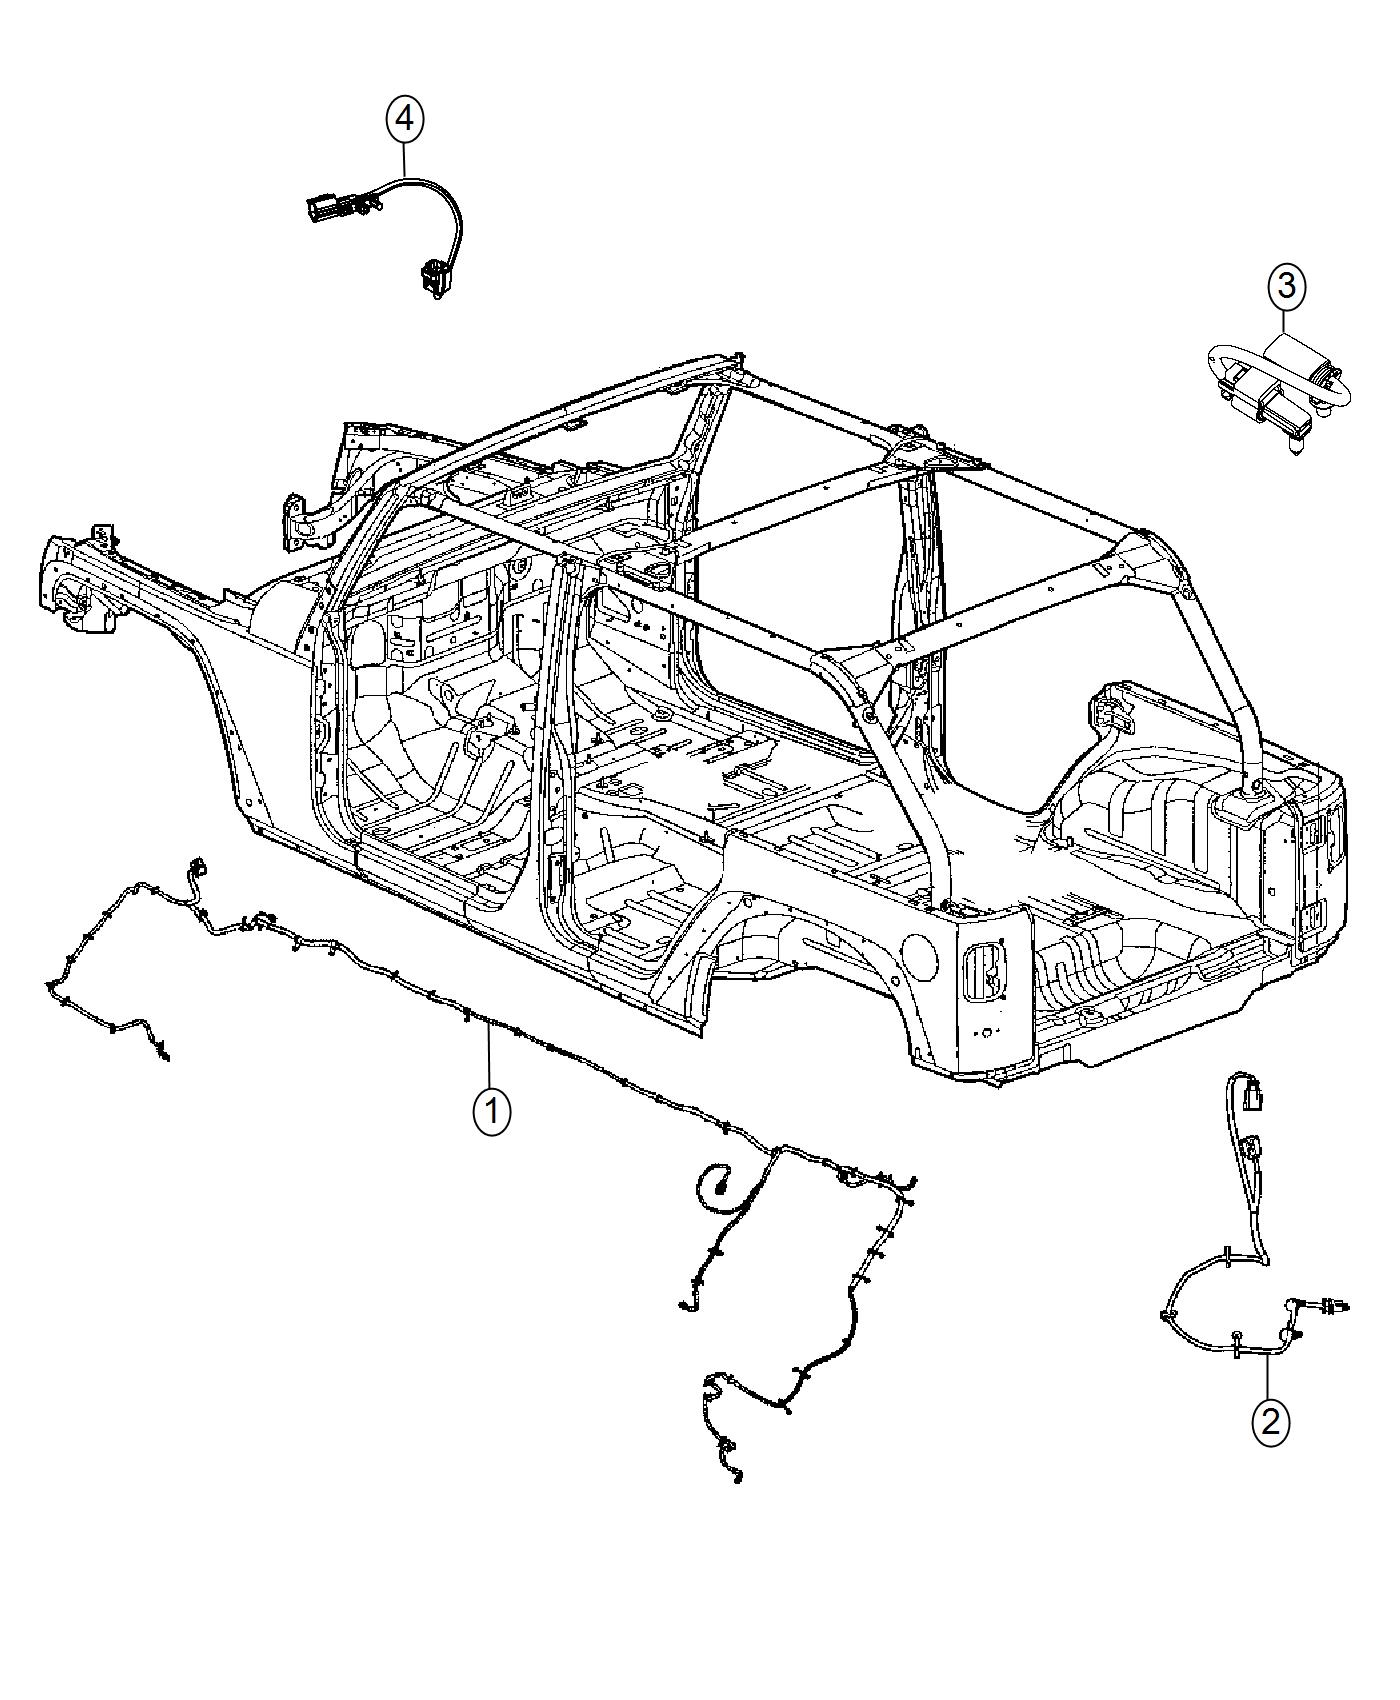 i2352965  Jeep Wrangler Unlimited Wiring Diagrams on fuel pump, yj gauge, bypass ignition switch,